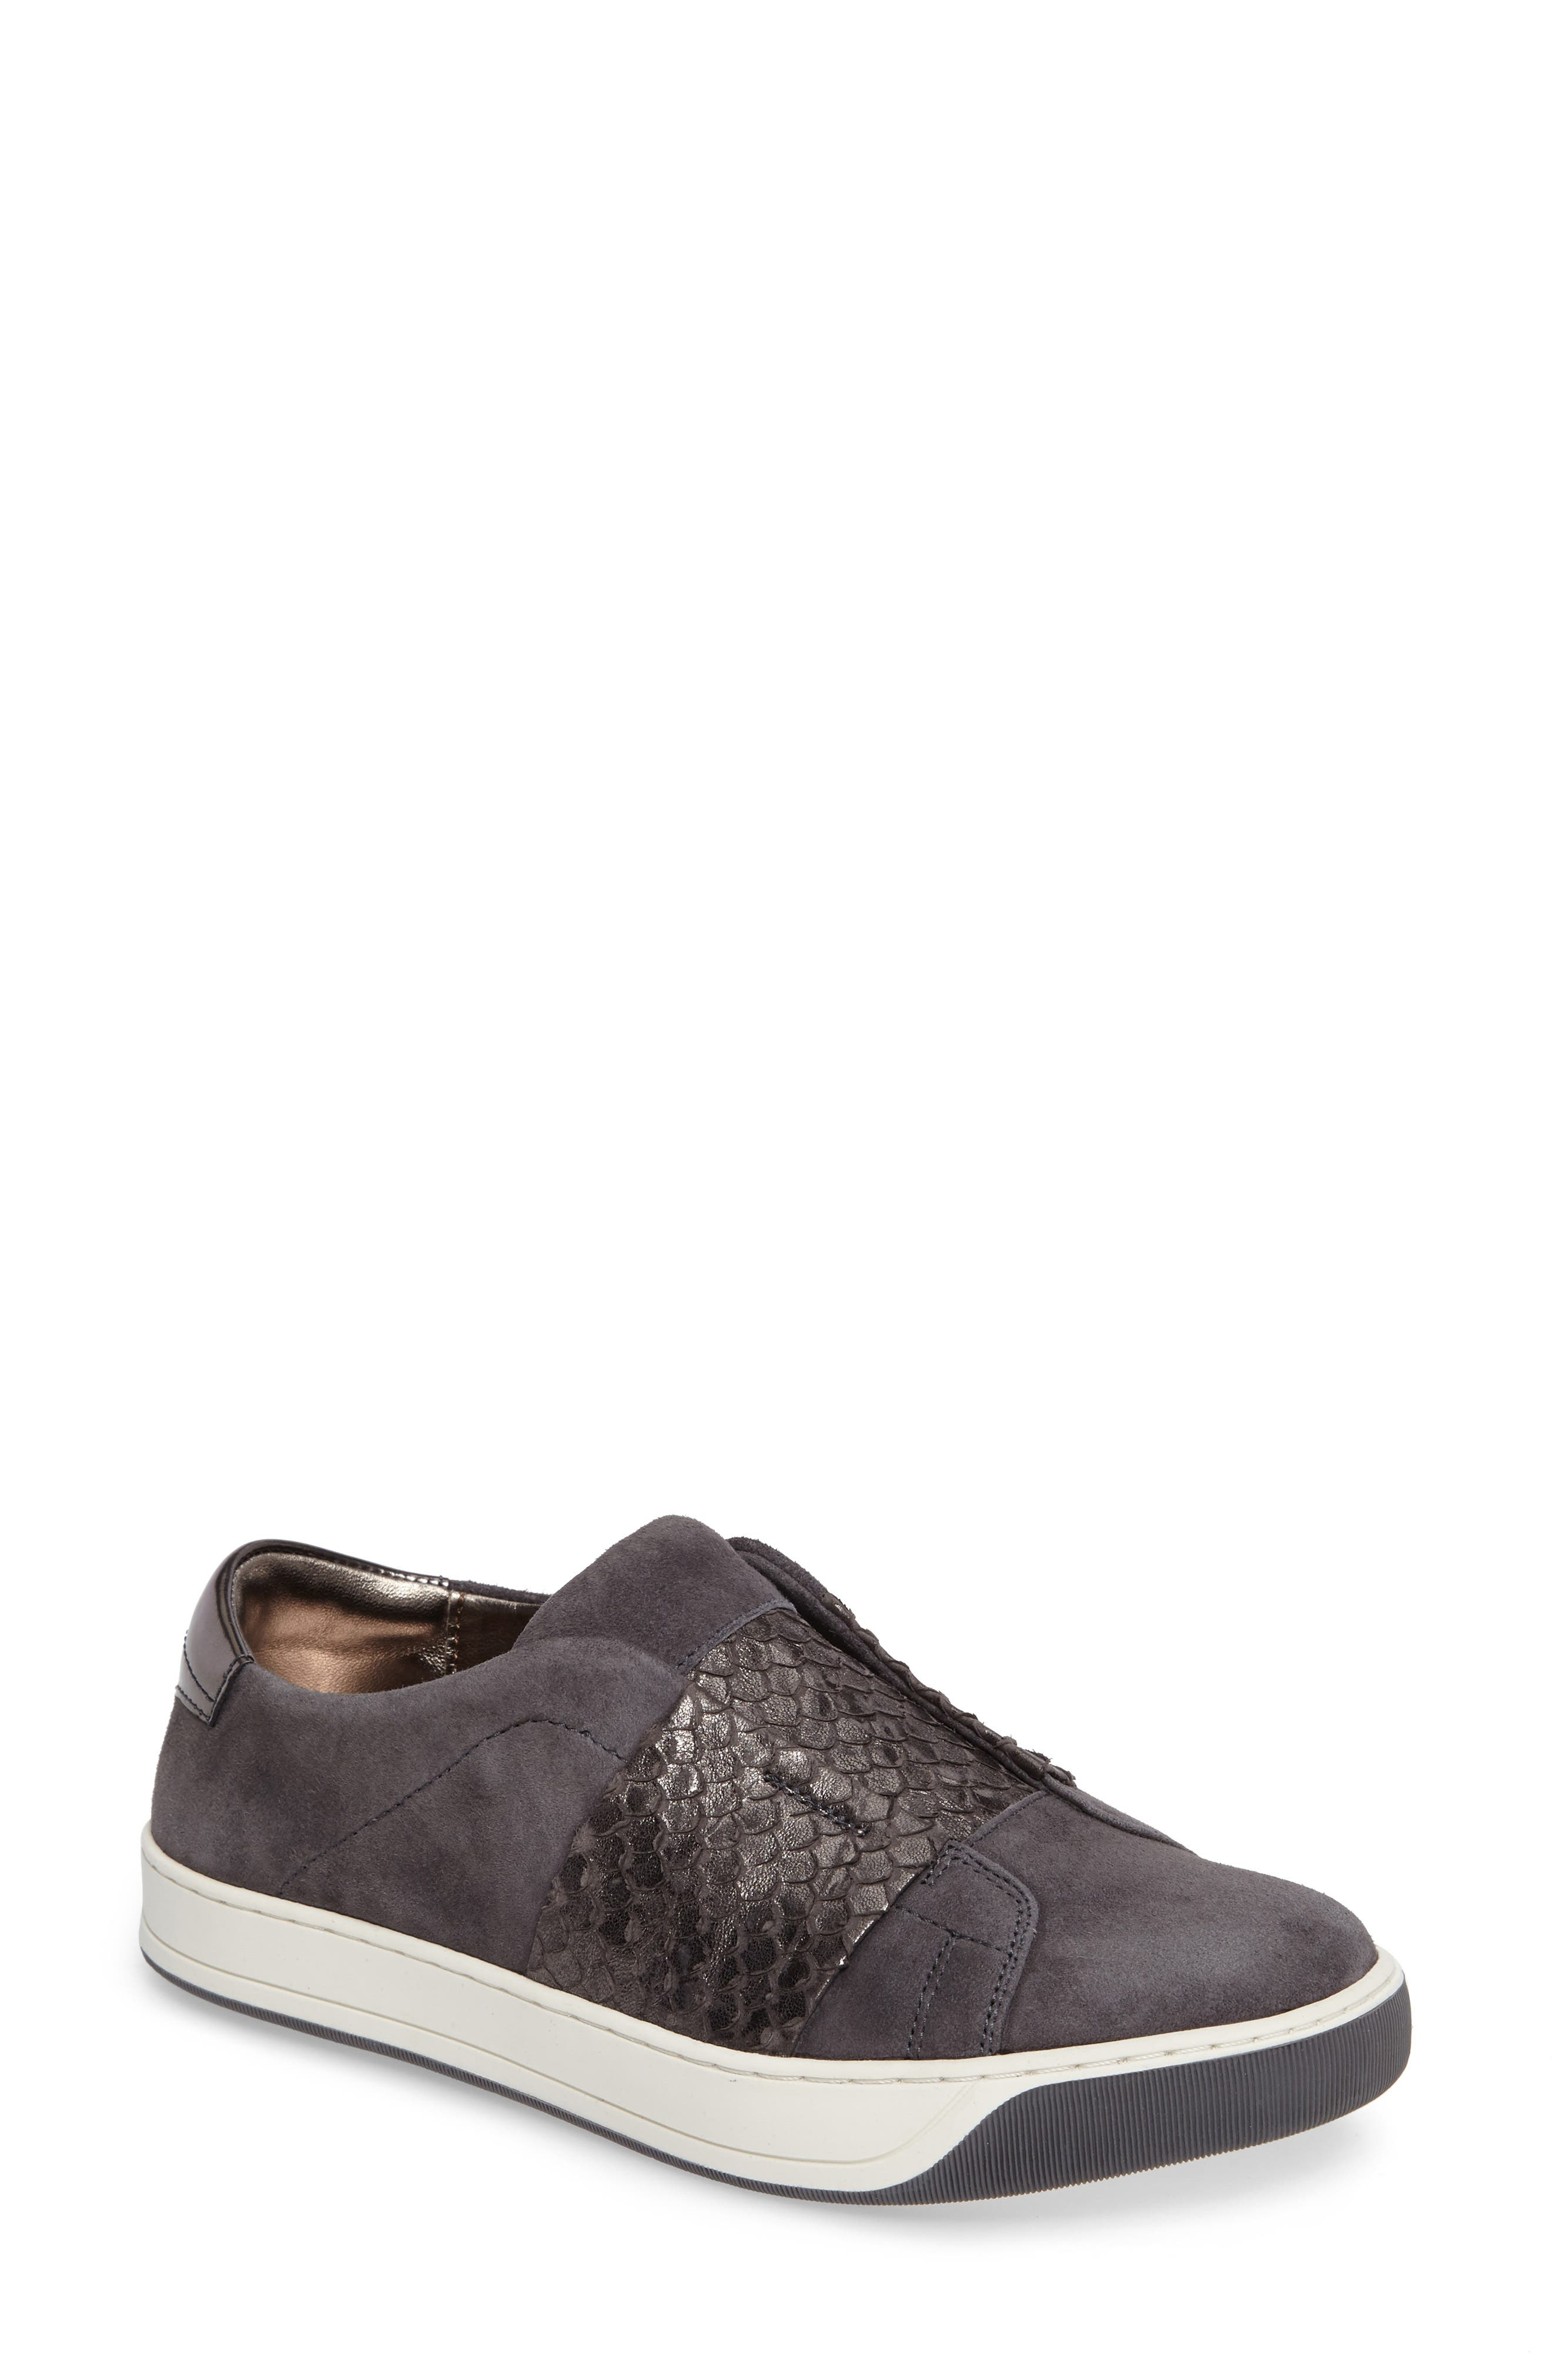 Johnston & Murphy Eden Slip-On Sneaker (Women)